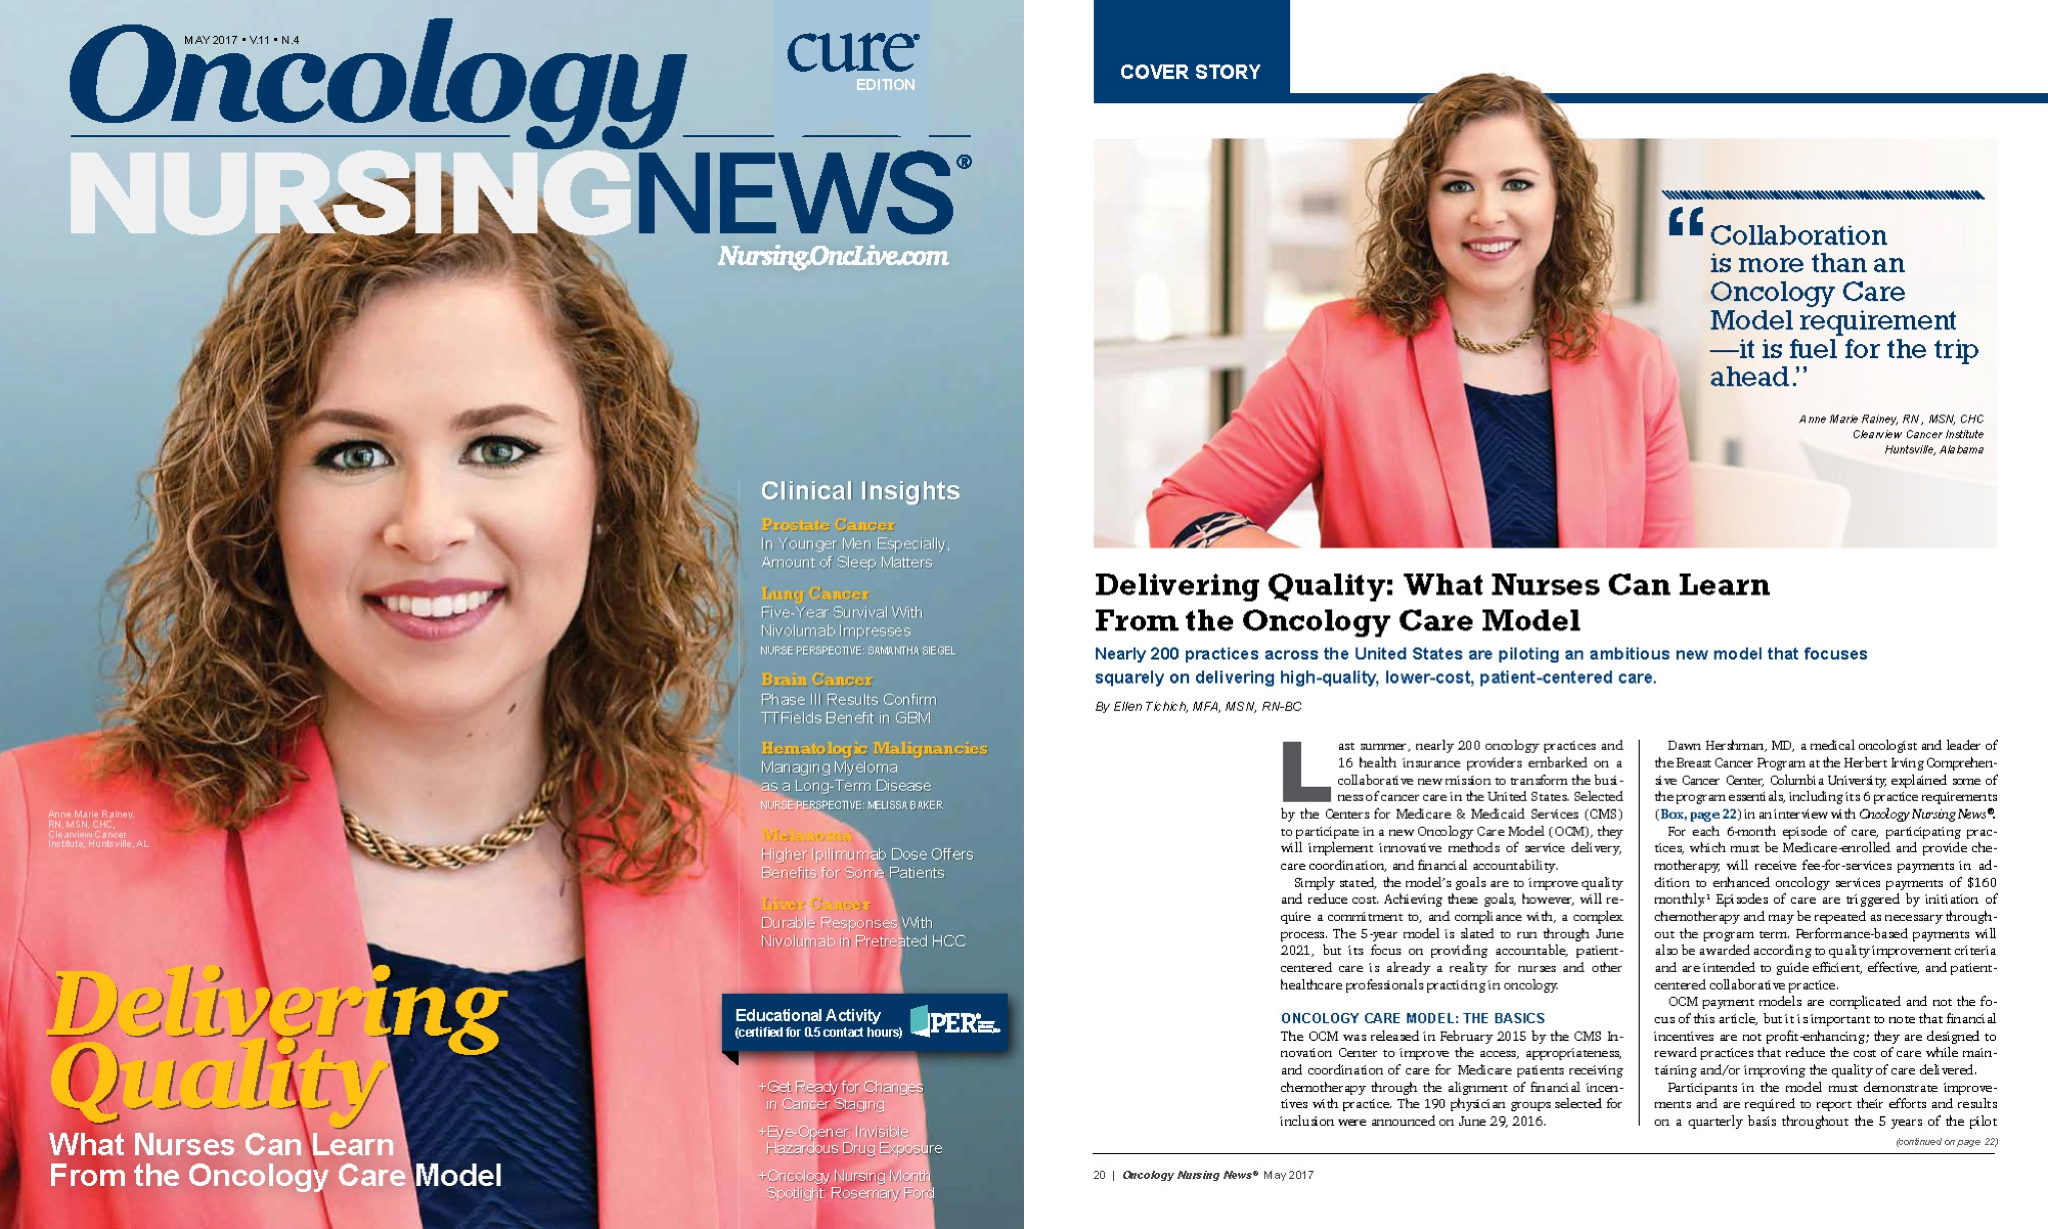 Oncology Nursing News,National Syndication - www.oncnursingnews.comThe Oncology Nursing News website and magazine provide the latest news and clinical insights for oncology nursing professionals, plus live meeting coverage, video interviews, and blog posts from your peers.I worked with ONN to schedule and shoot the subject of their May 2017 cover story, at Huntsville Clearview Cancer Institute. ONN only needed 1-2 images for the feature, but I was able to provide them with a variety and over 20 shots to choose from.